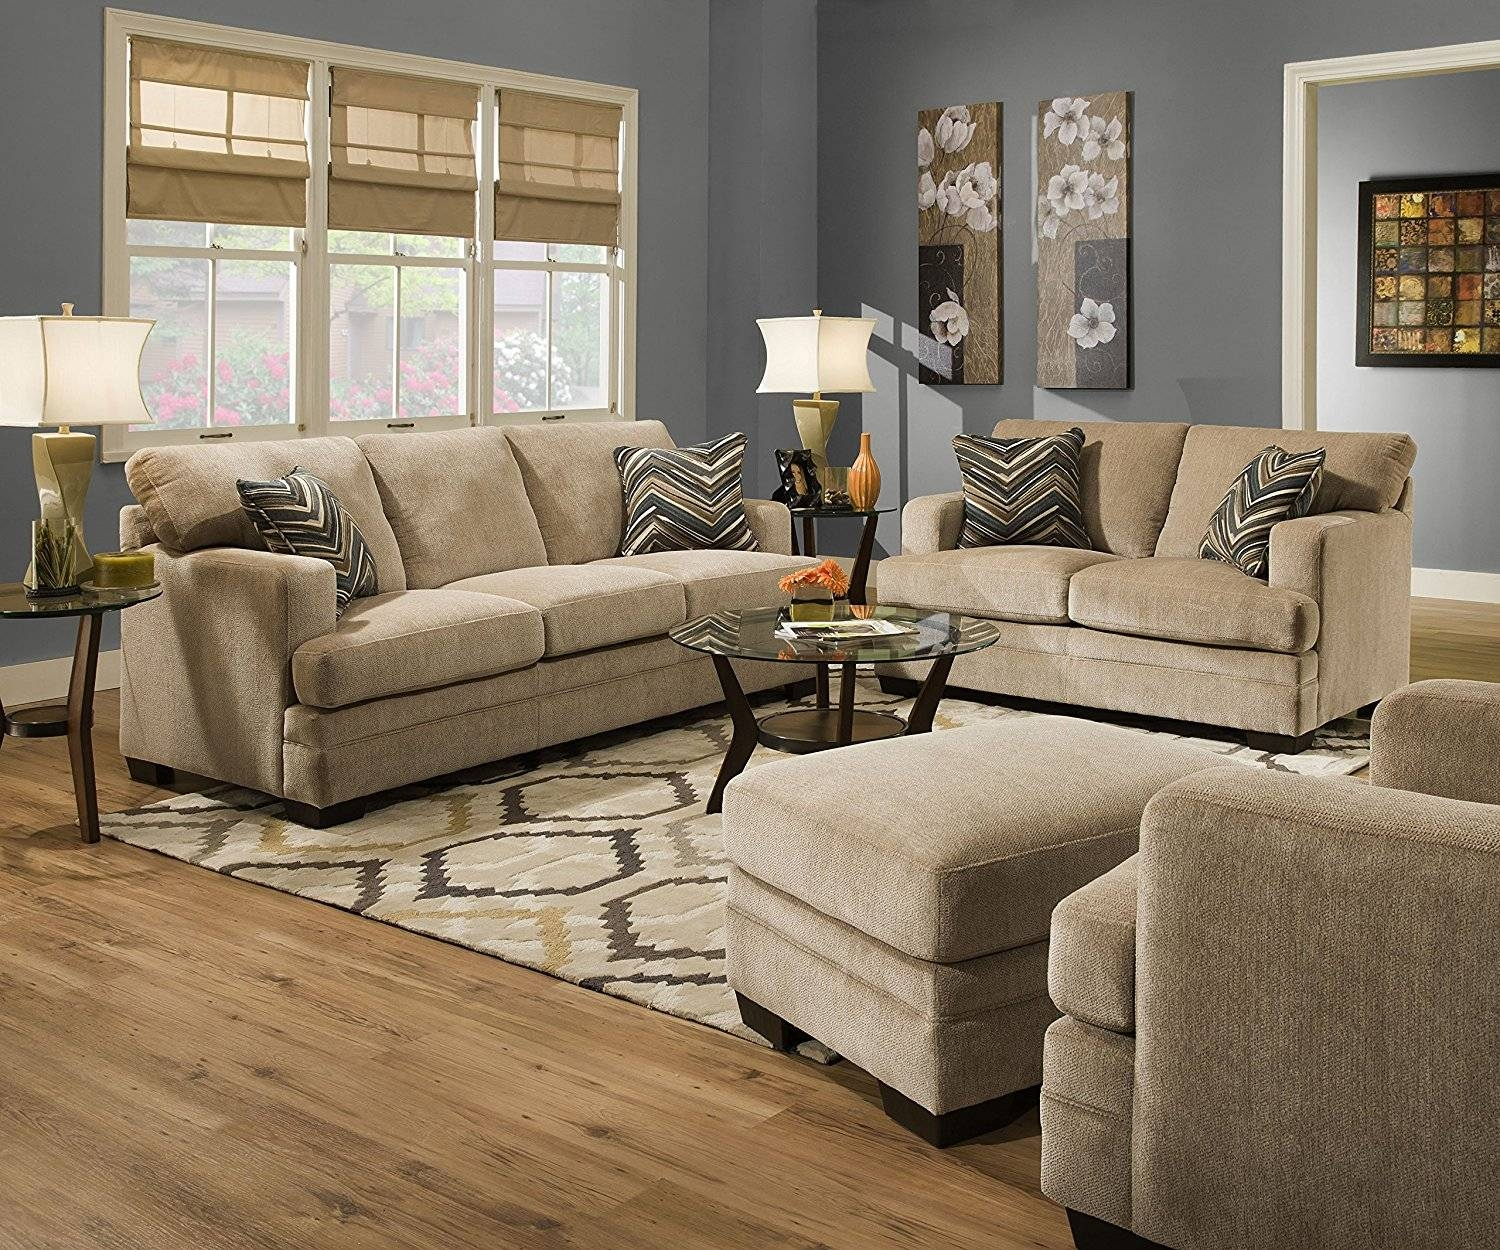 Furniture: Simmons Couch | Cheap Leather Couches | Big Lots within Big Lots Simmons Furniture (Image 7 of 15)